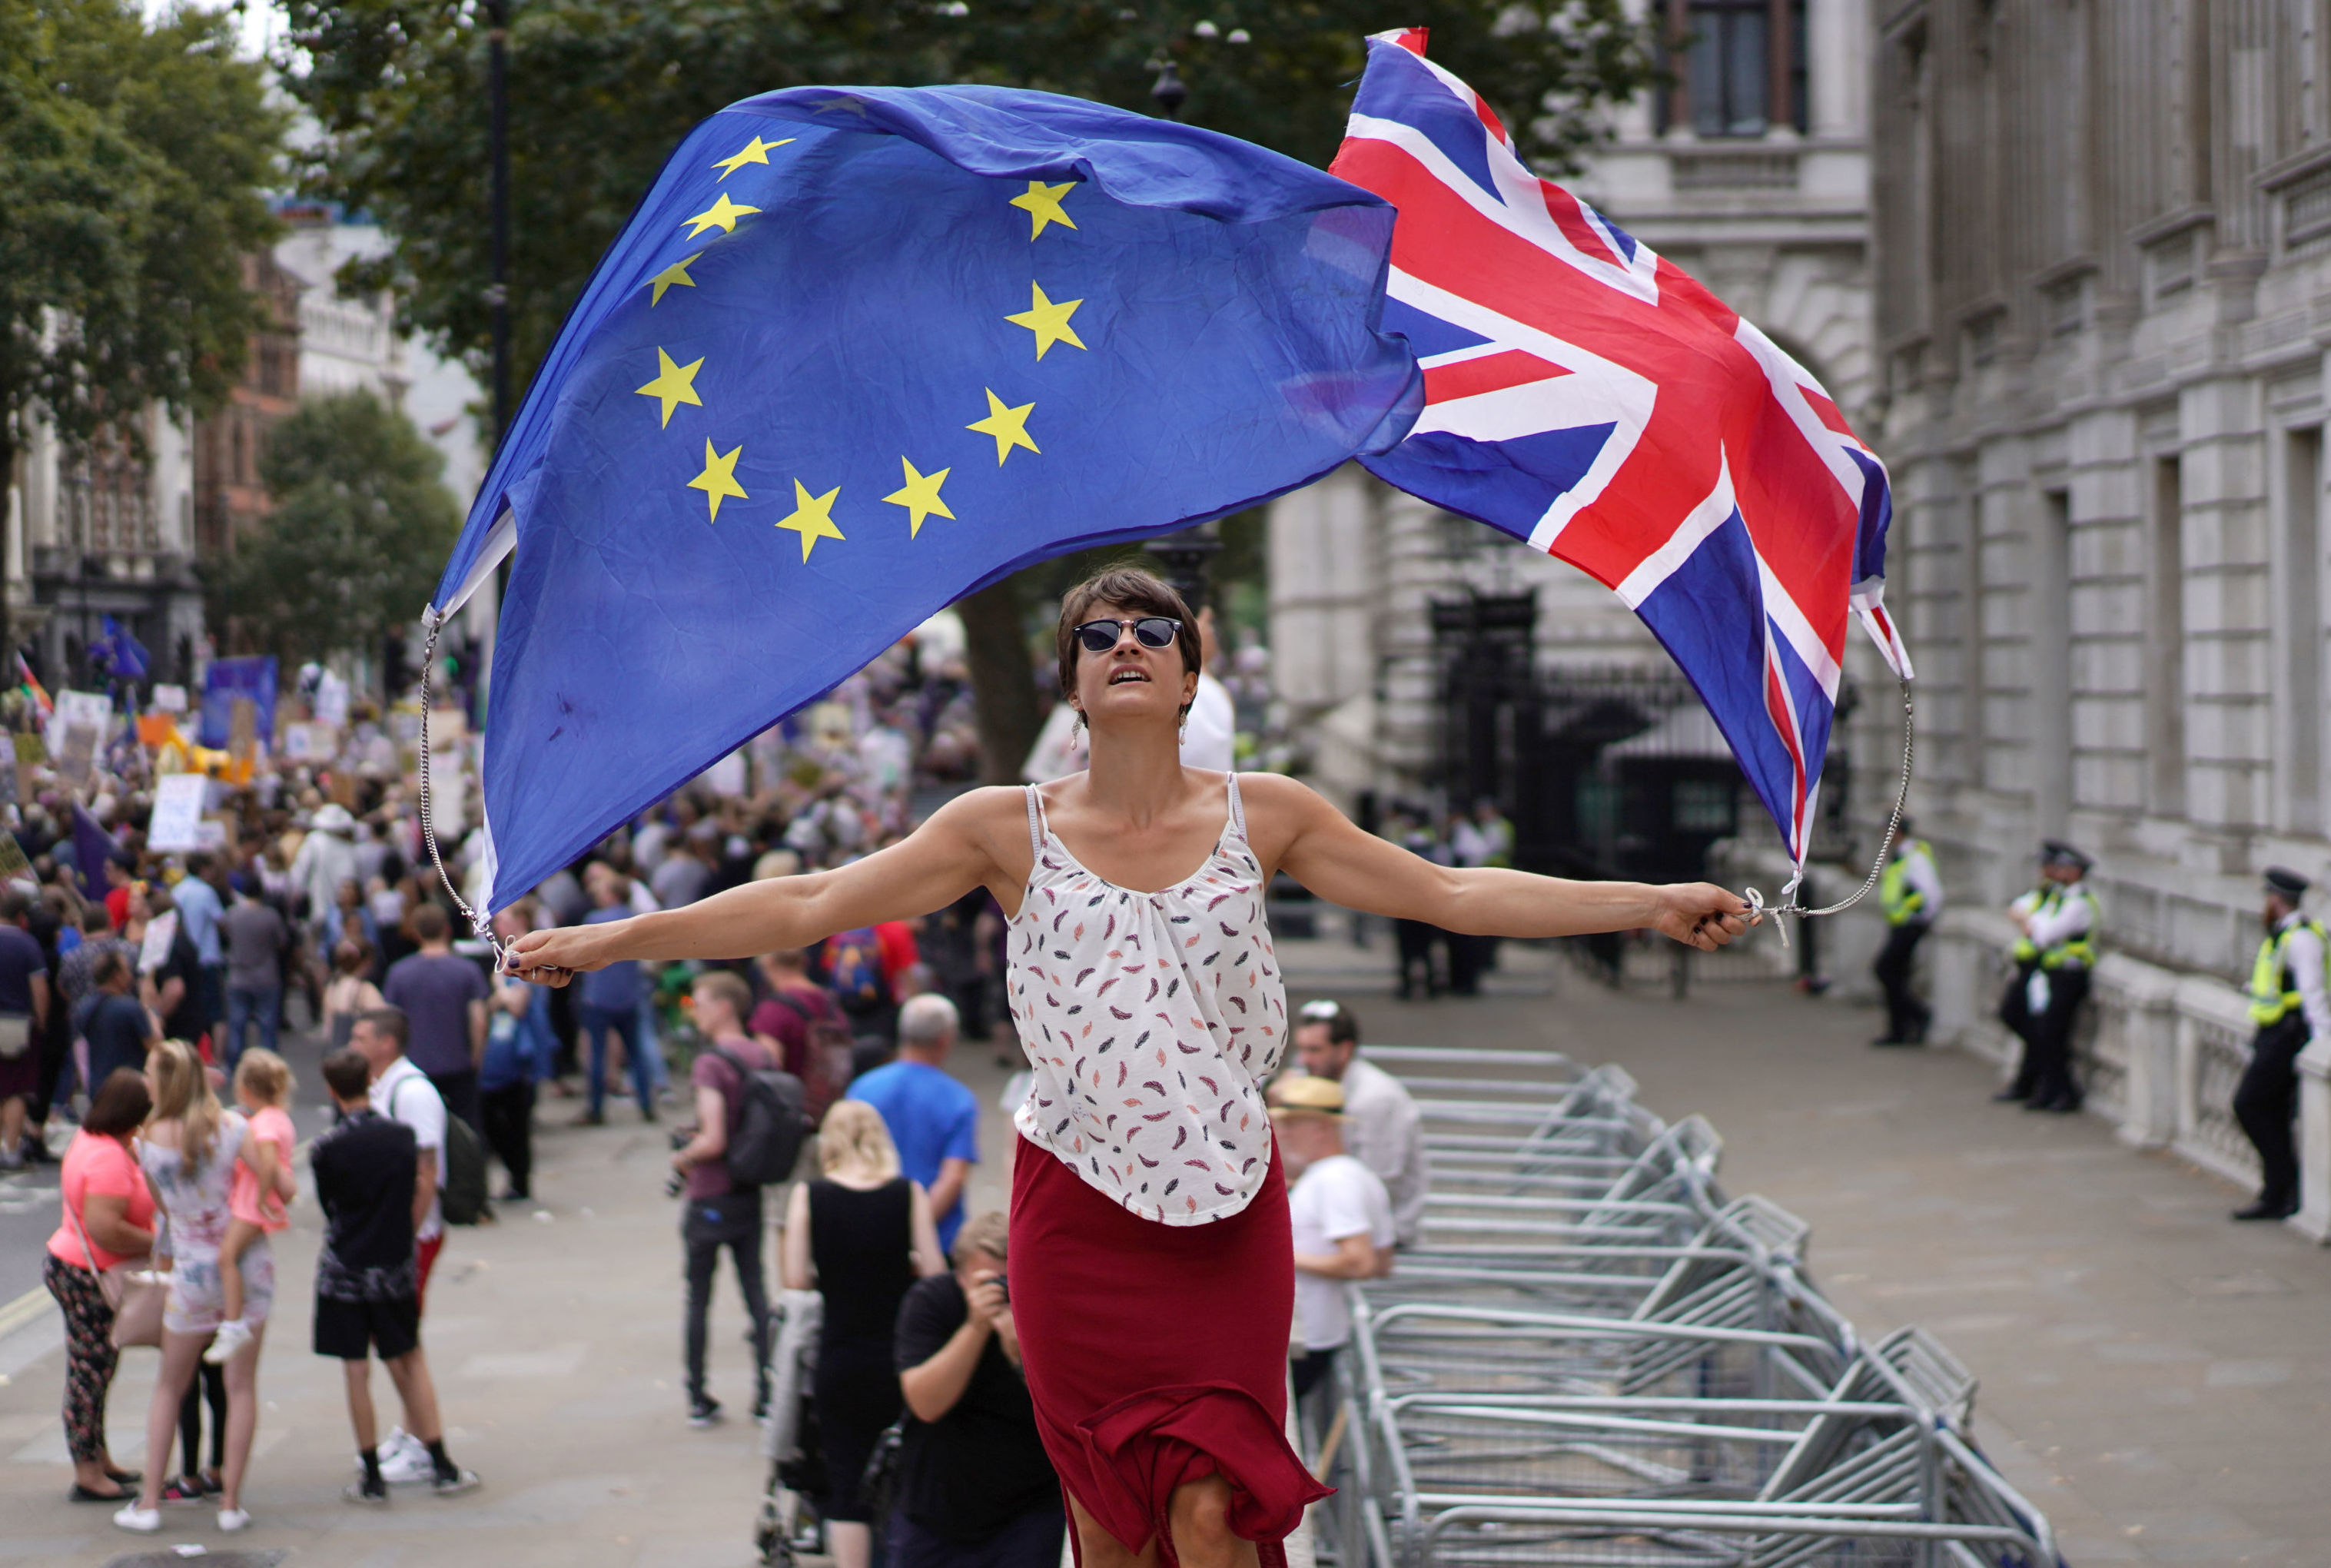 Anti-Brexit protestors demonstrate at Whitehall in London, Britain, August 31, 2019